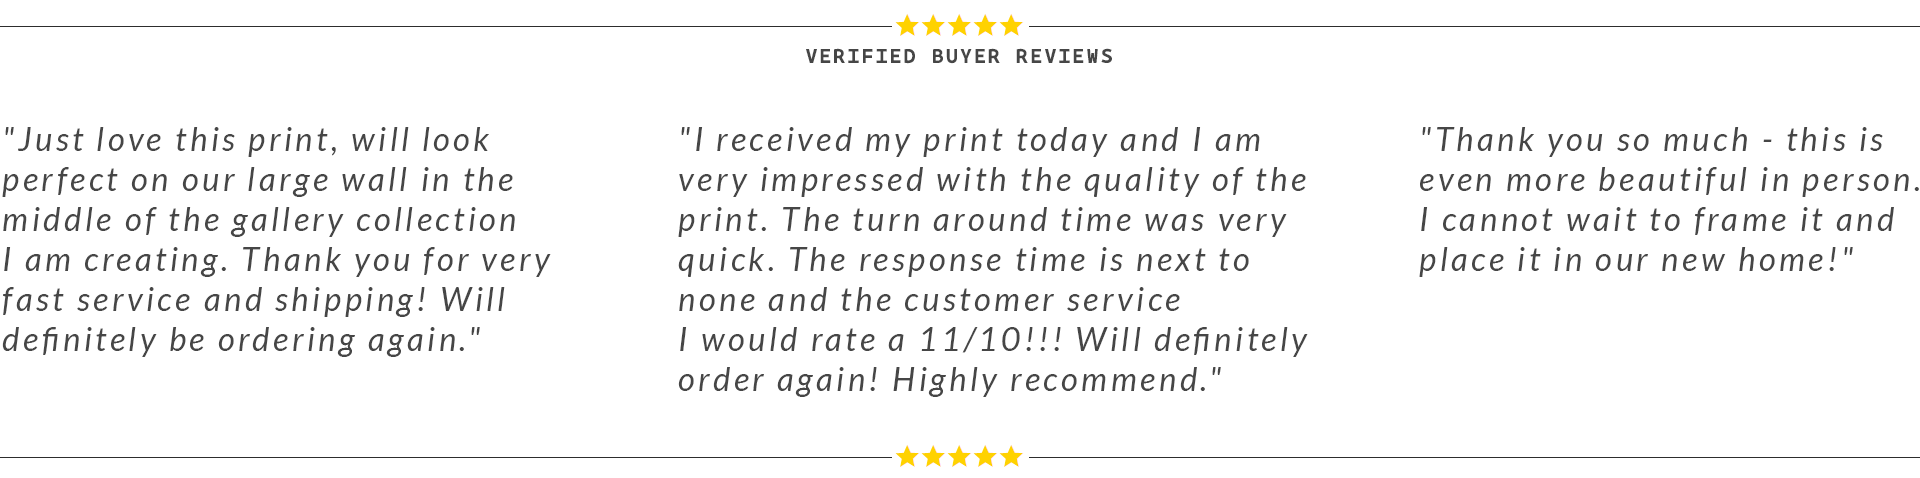 Jibe Prints Verified Buyer Reviews